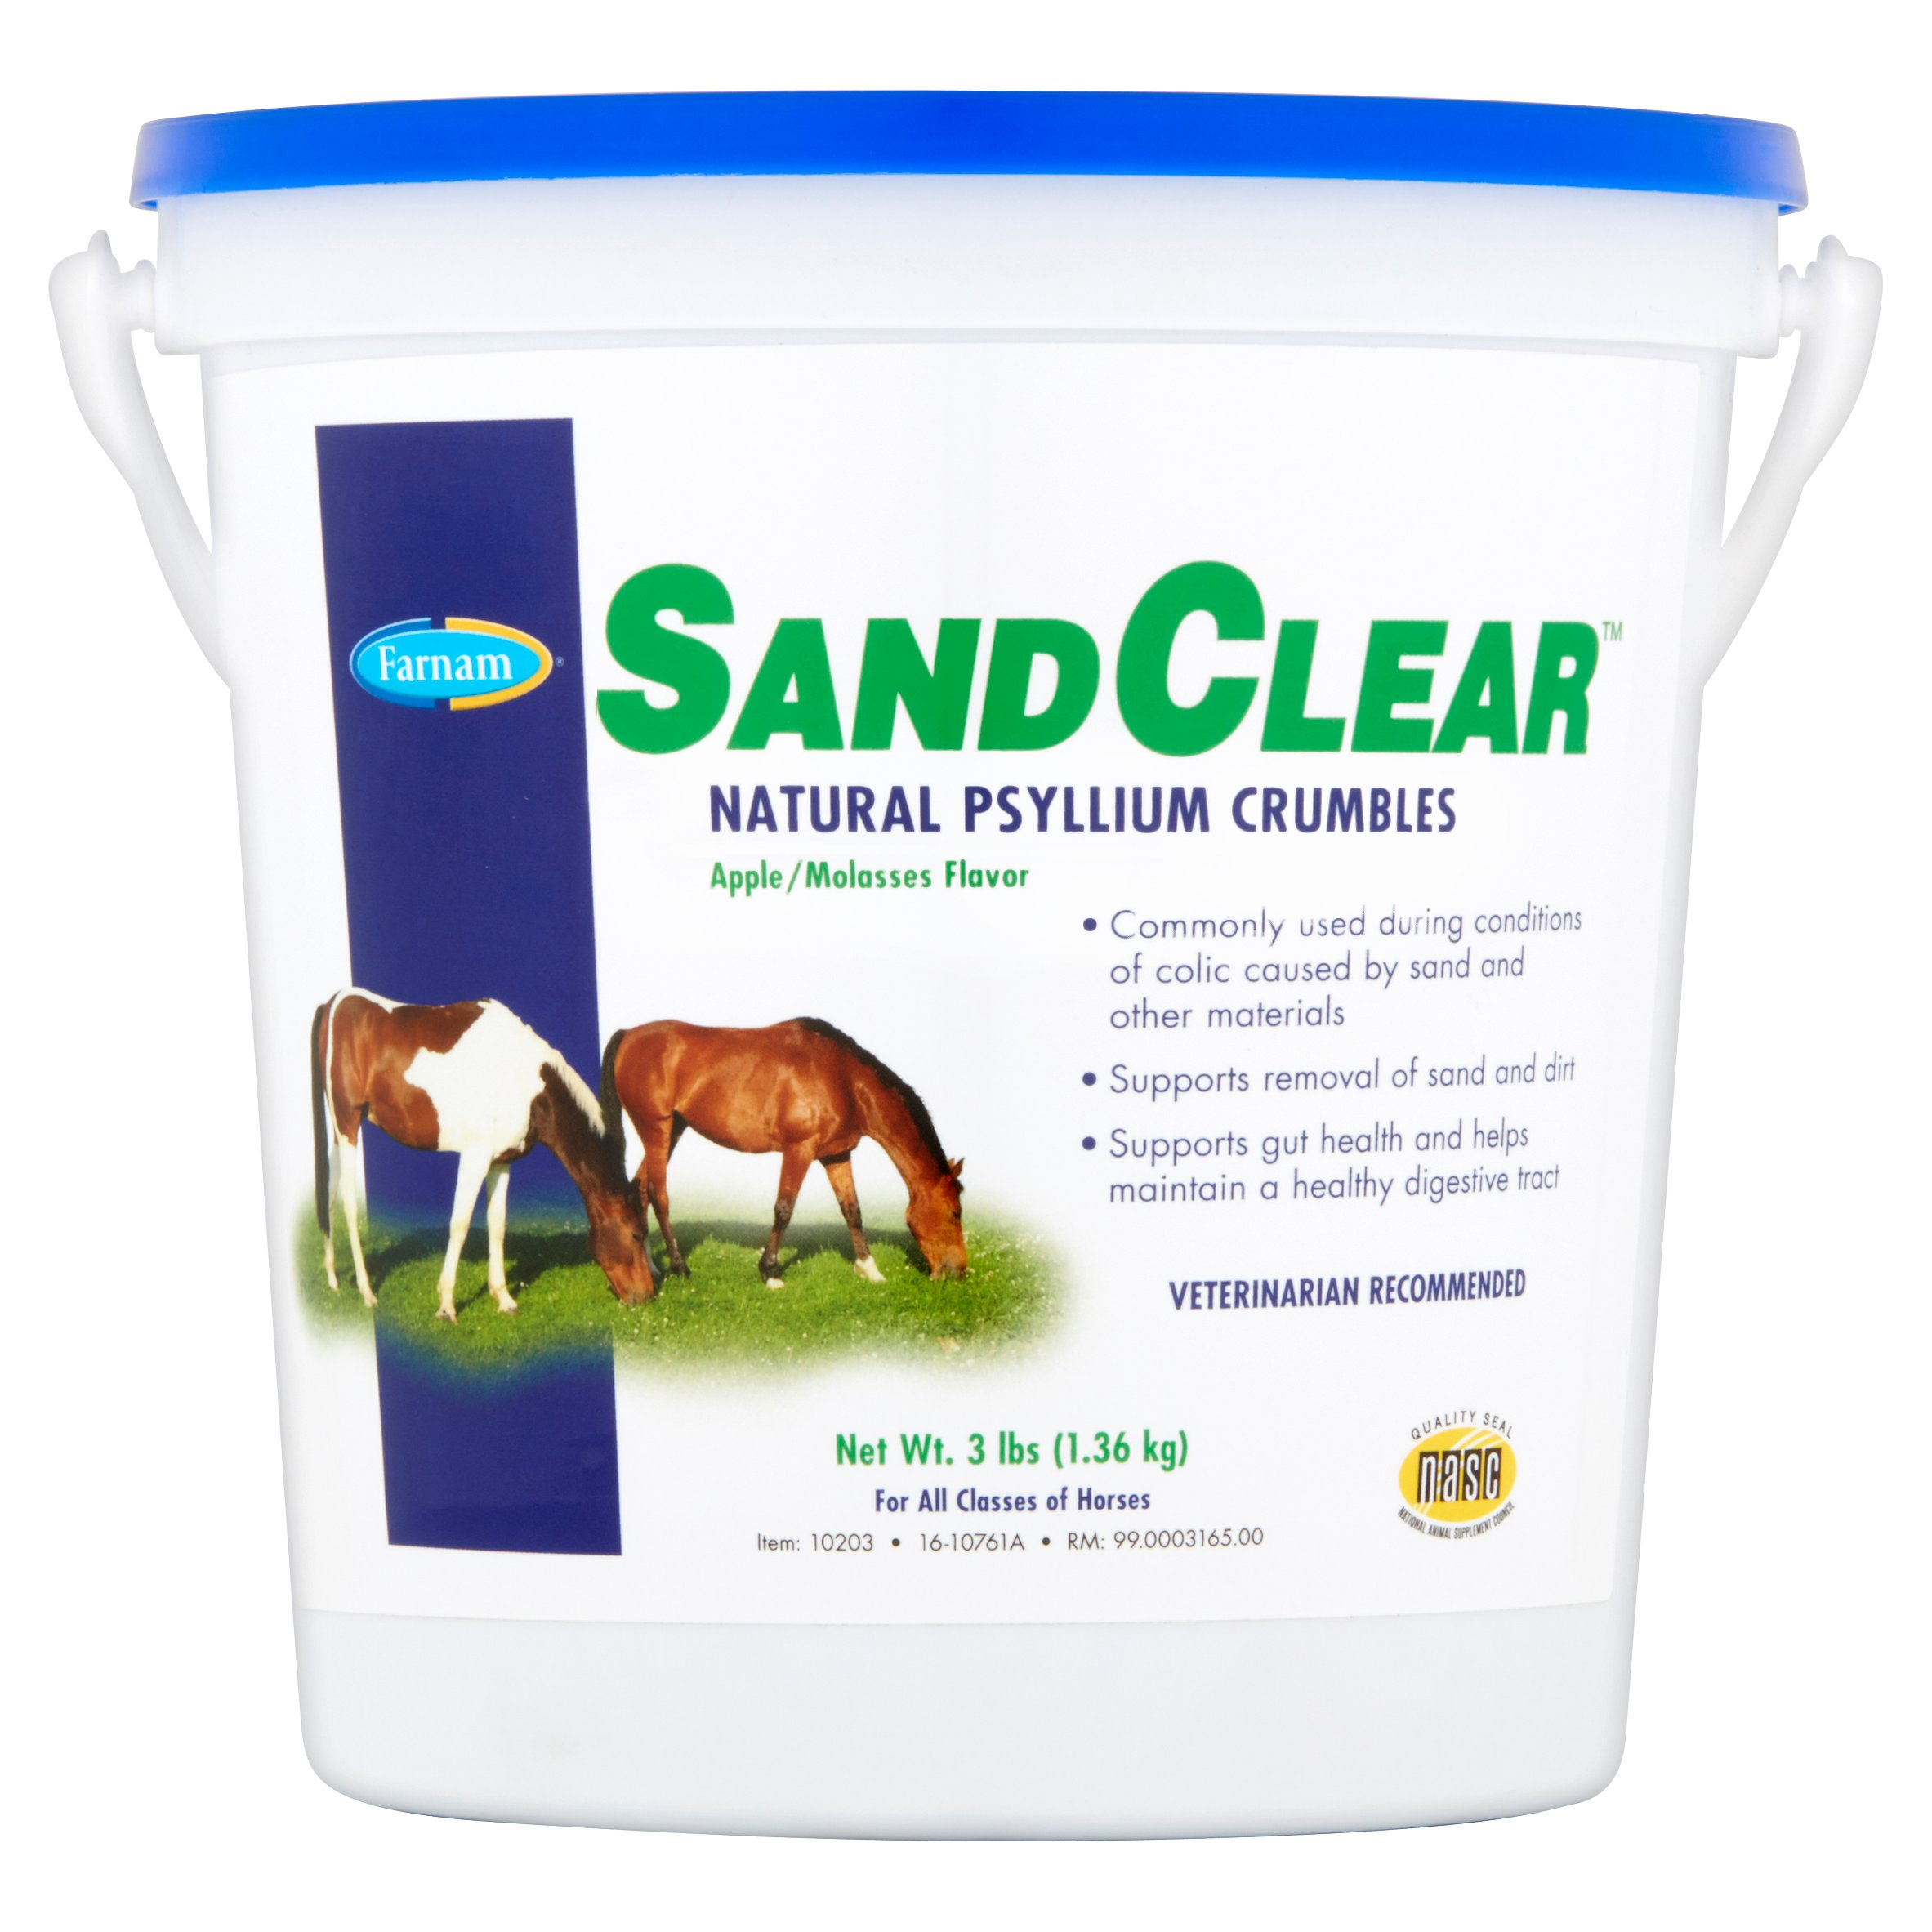 Farnam SandClear Natural Psyllium Crumbles Apple/Molasses Horse Feed Supplement, 3 lbs.